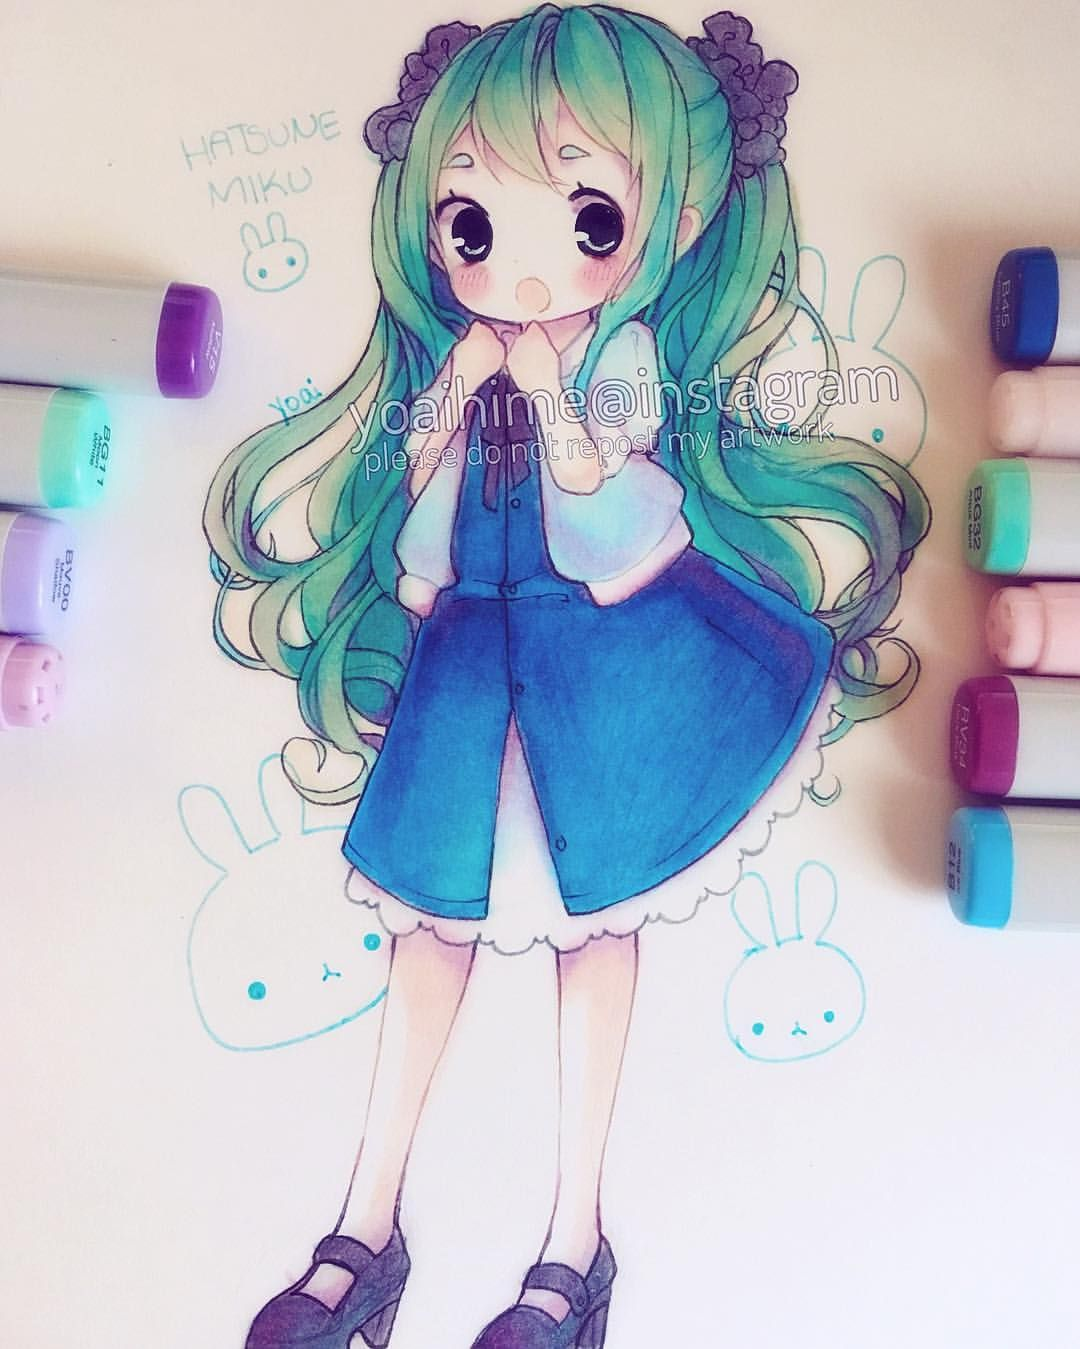 Child version of Miku (´・ω・`) in addition to other